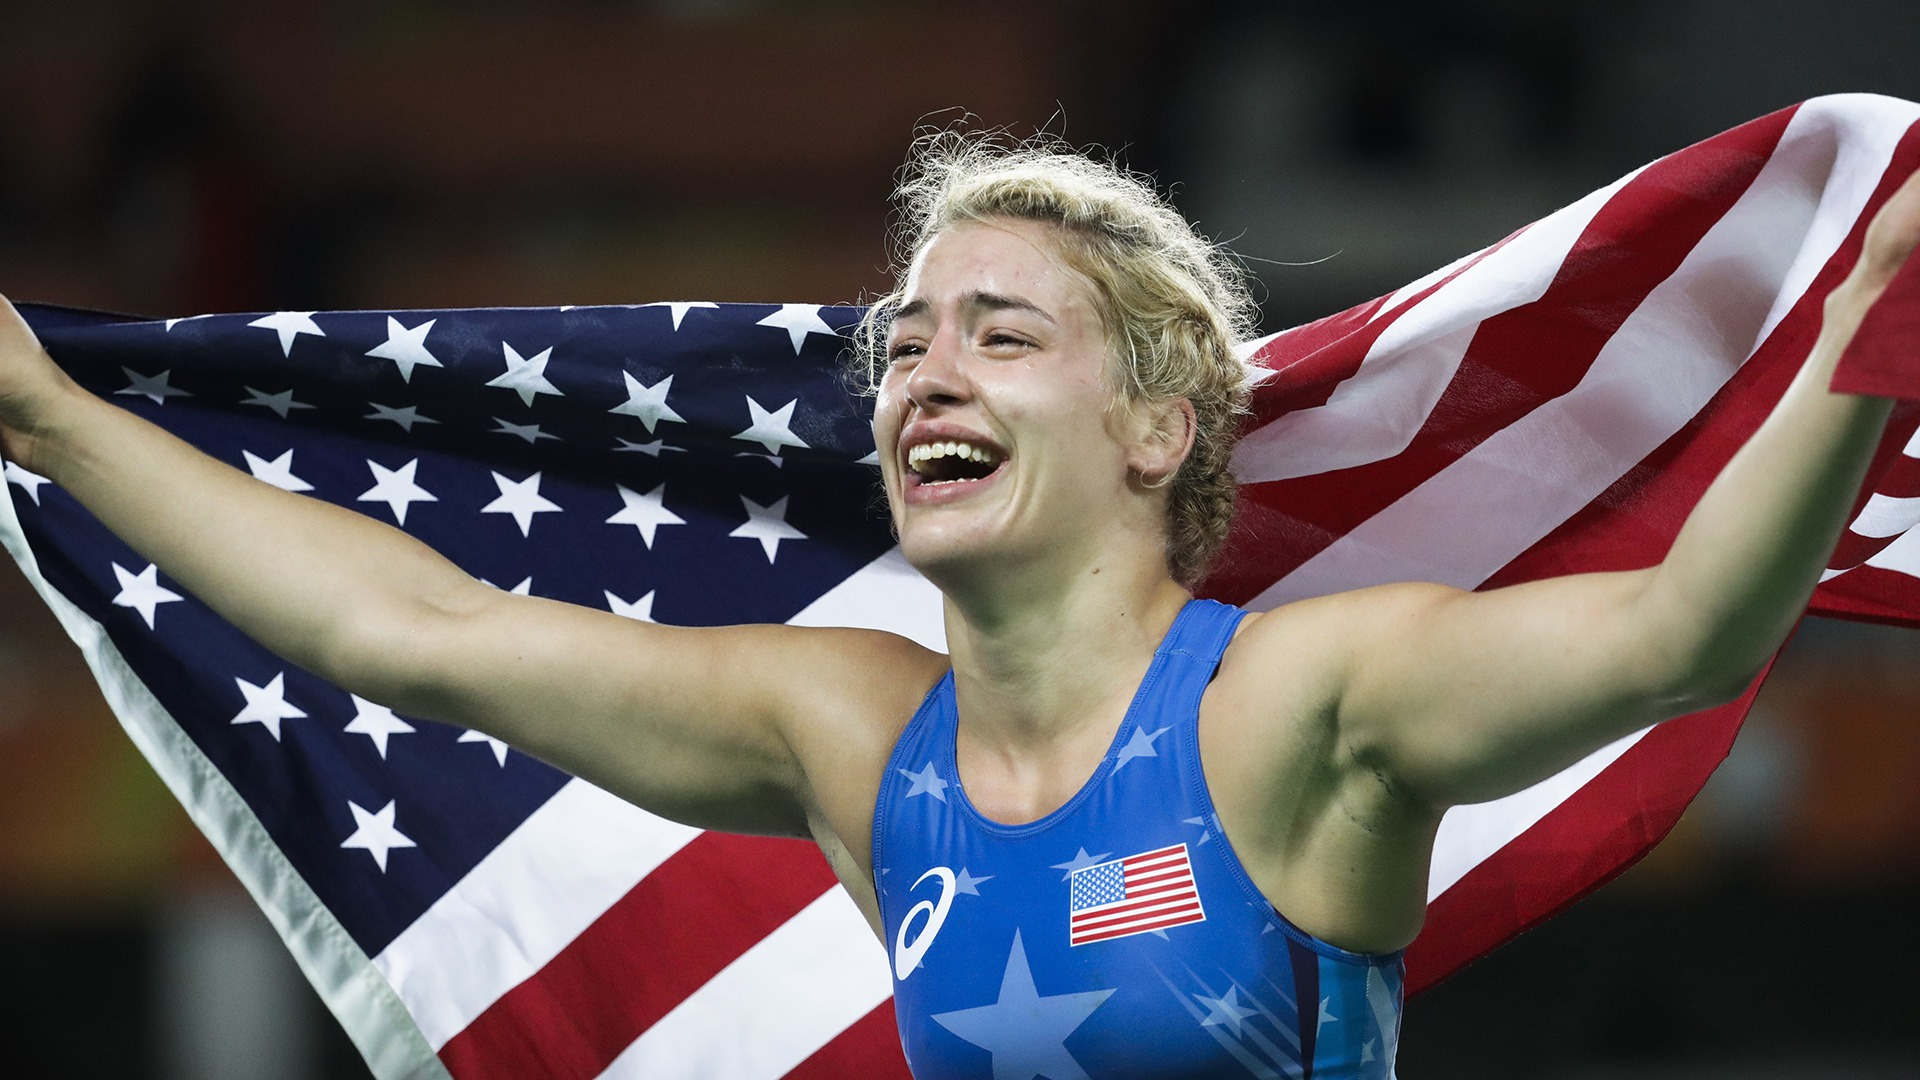 Helen Maroulis is crying as she holds as American flag